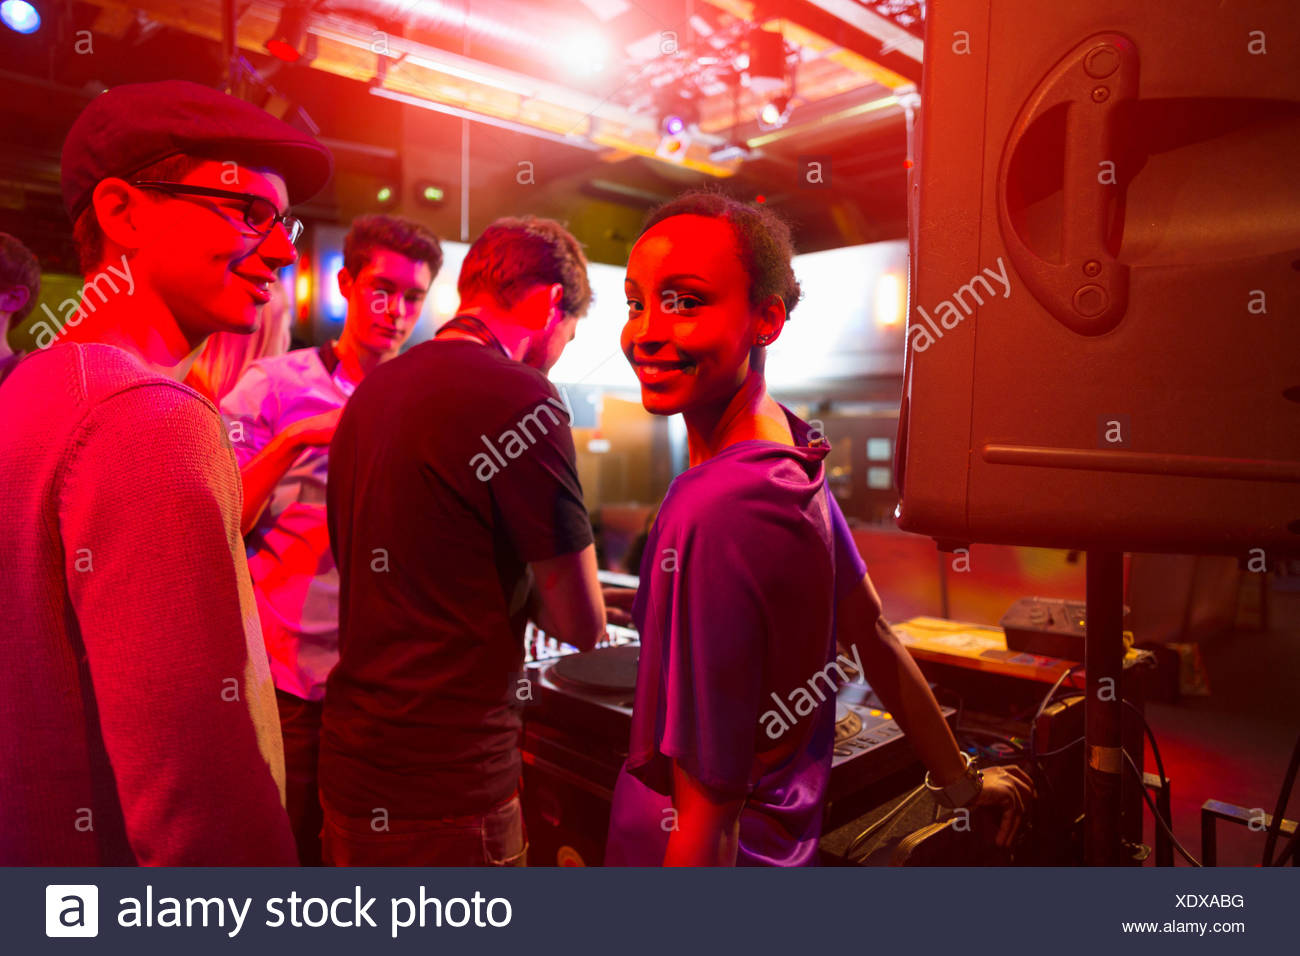 Group of people behind mixing desk - Stock Image